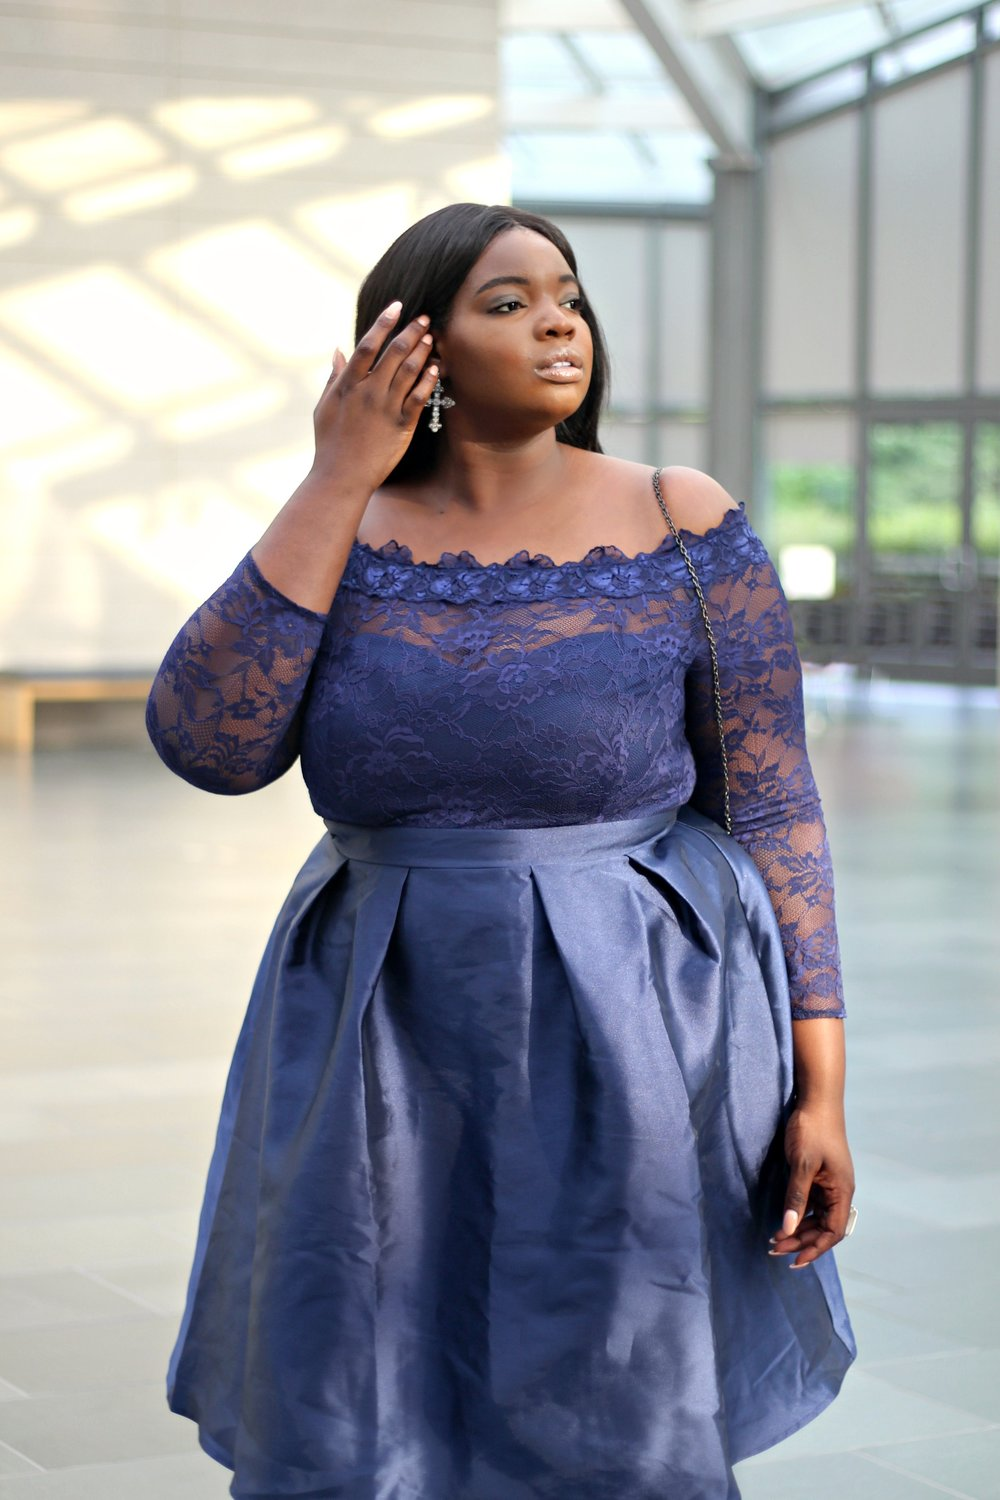 plus-size-simply-be-occasion-wear-lace-bardot-dress-valerie-eguavoen-3.jpg